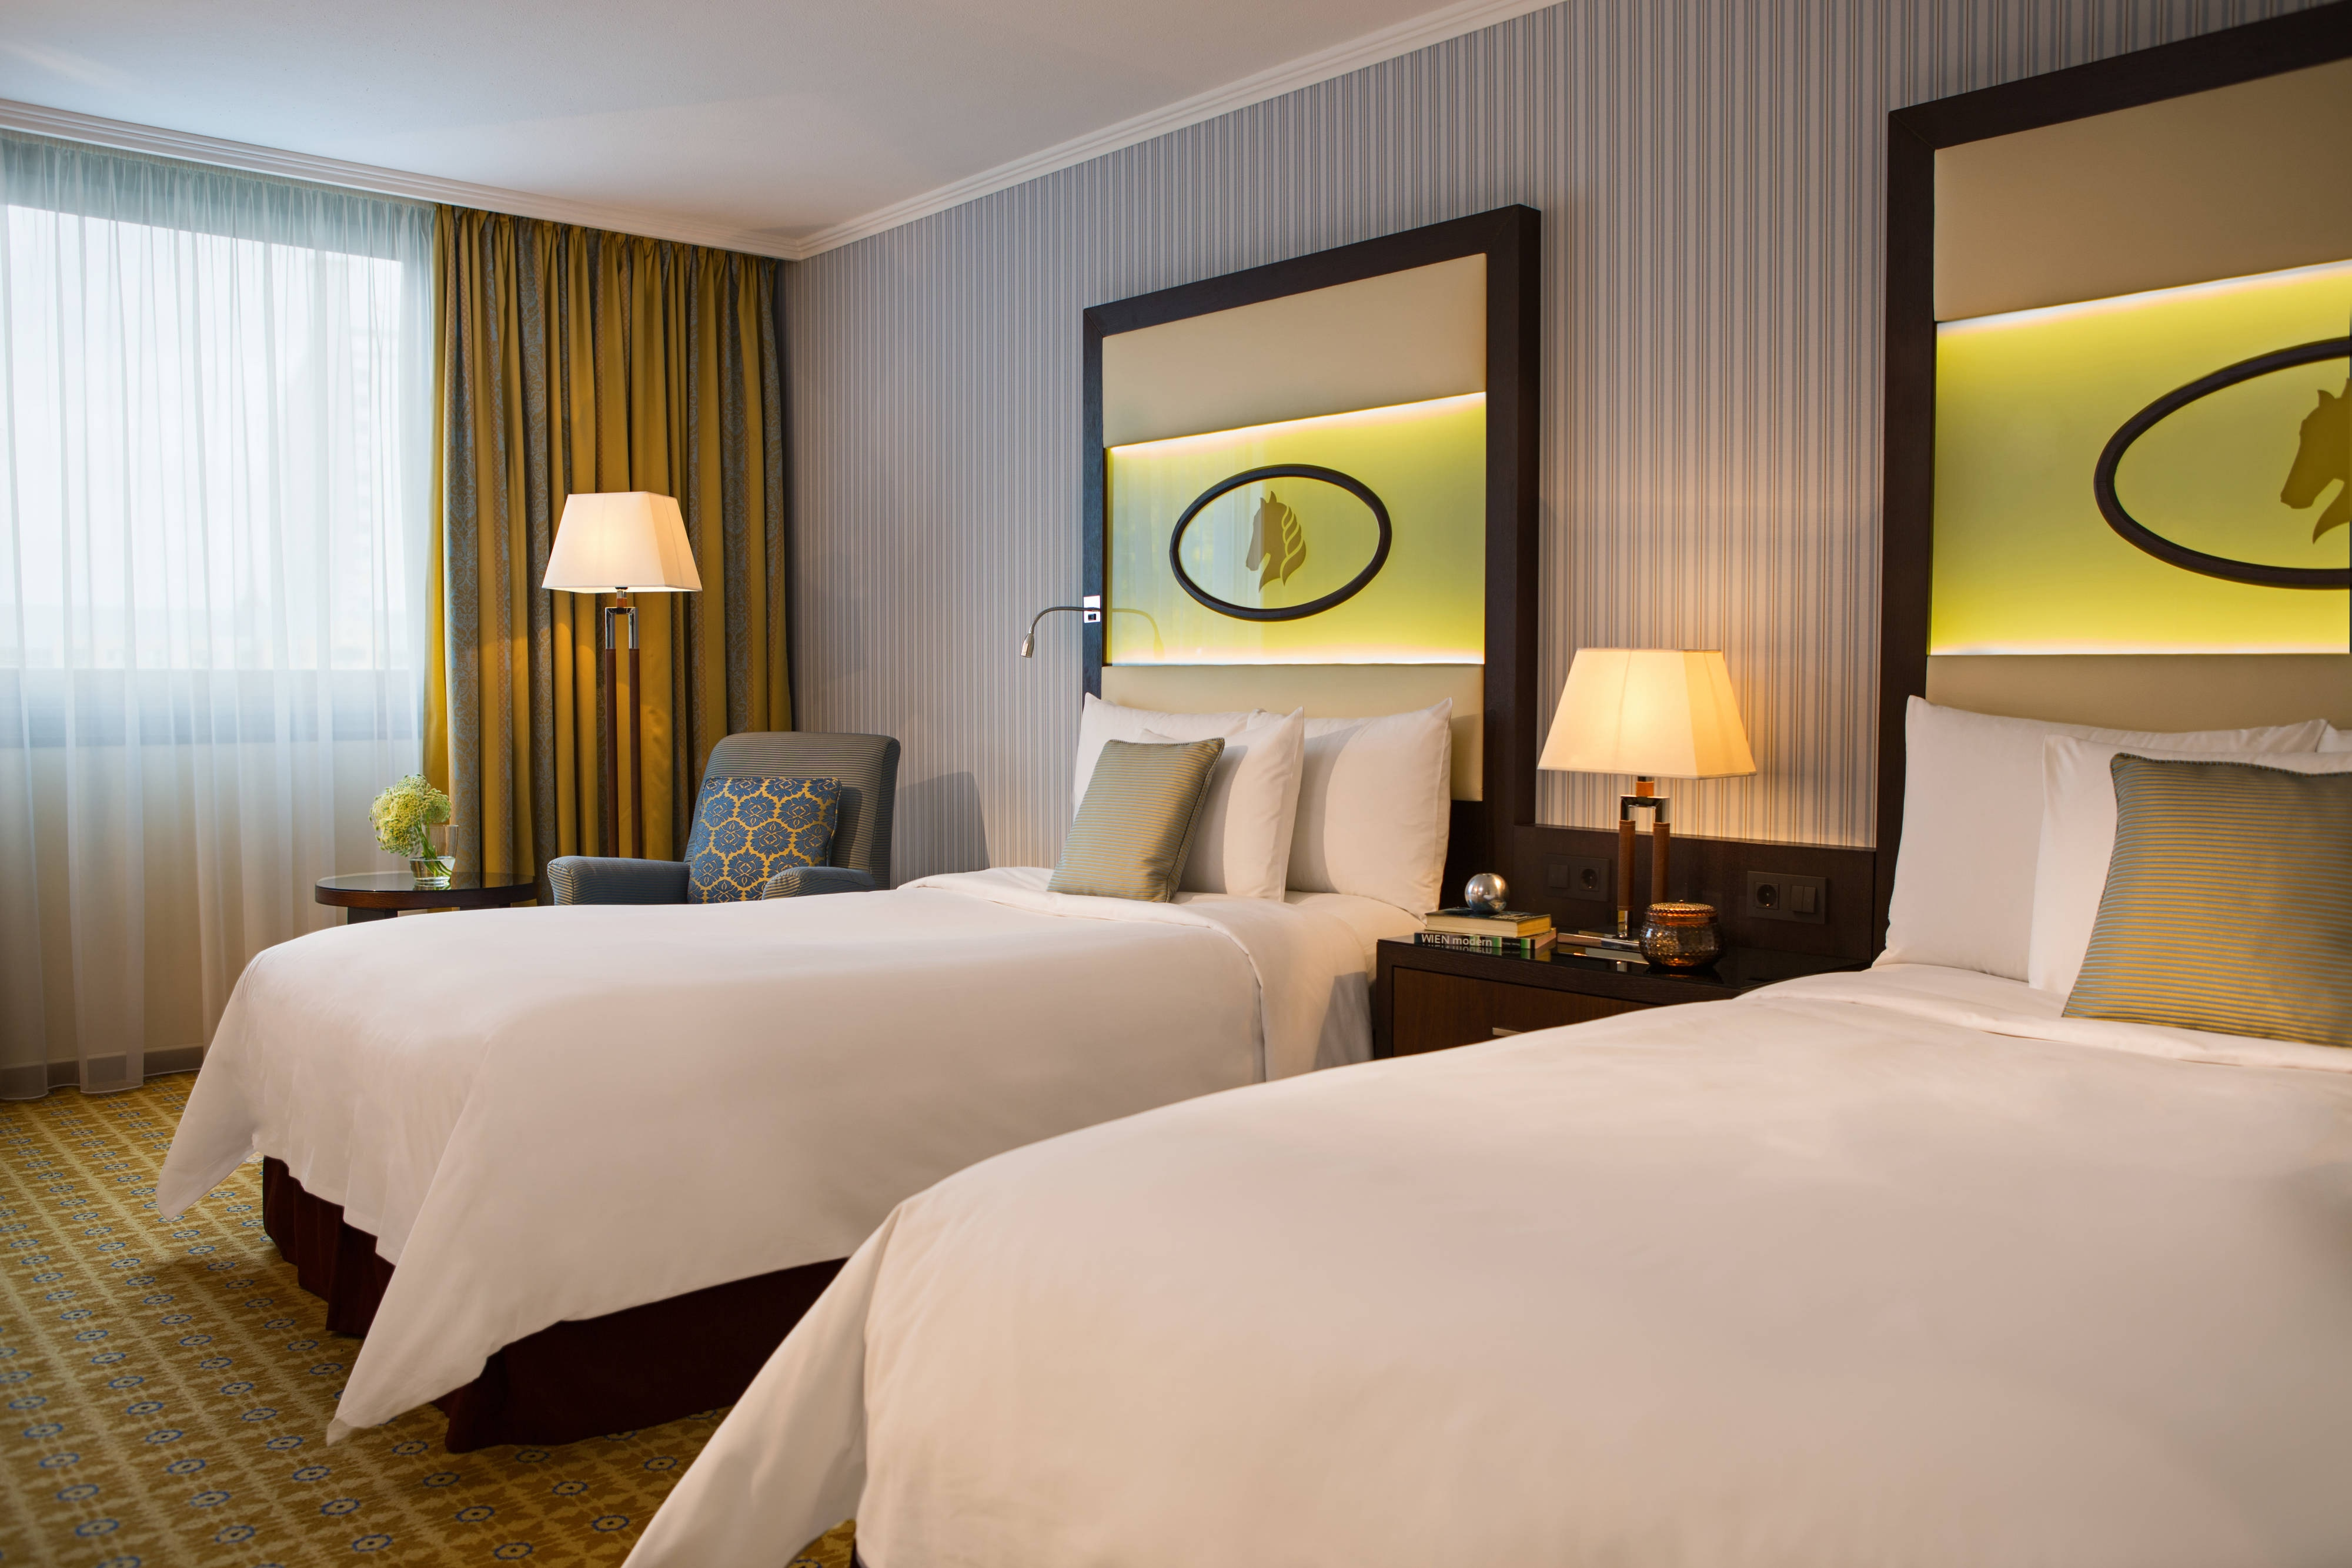 Renovated Vienna Hotel Rooms